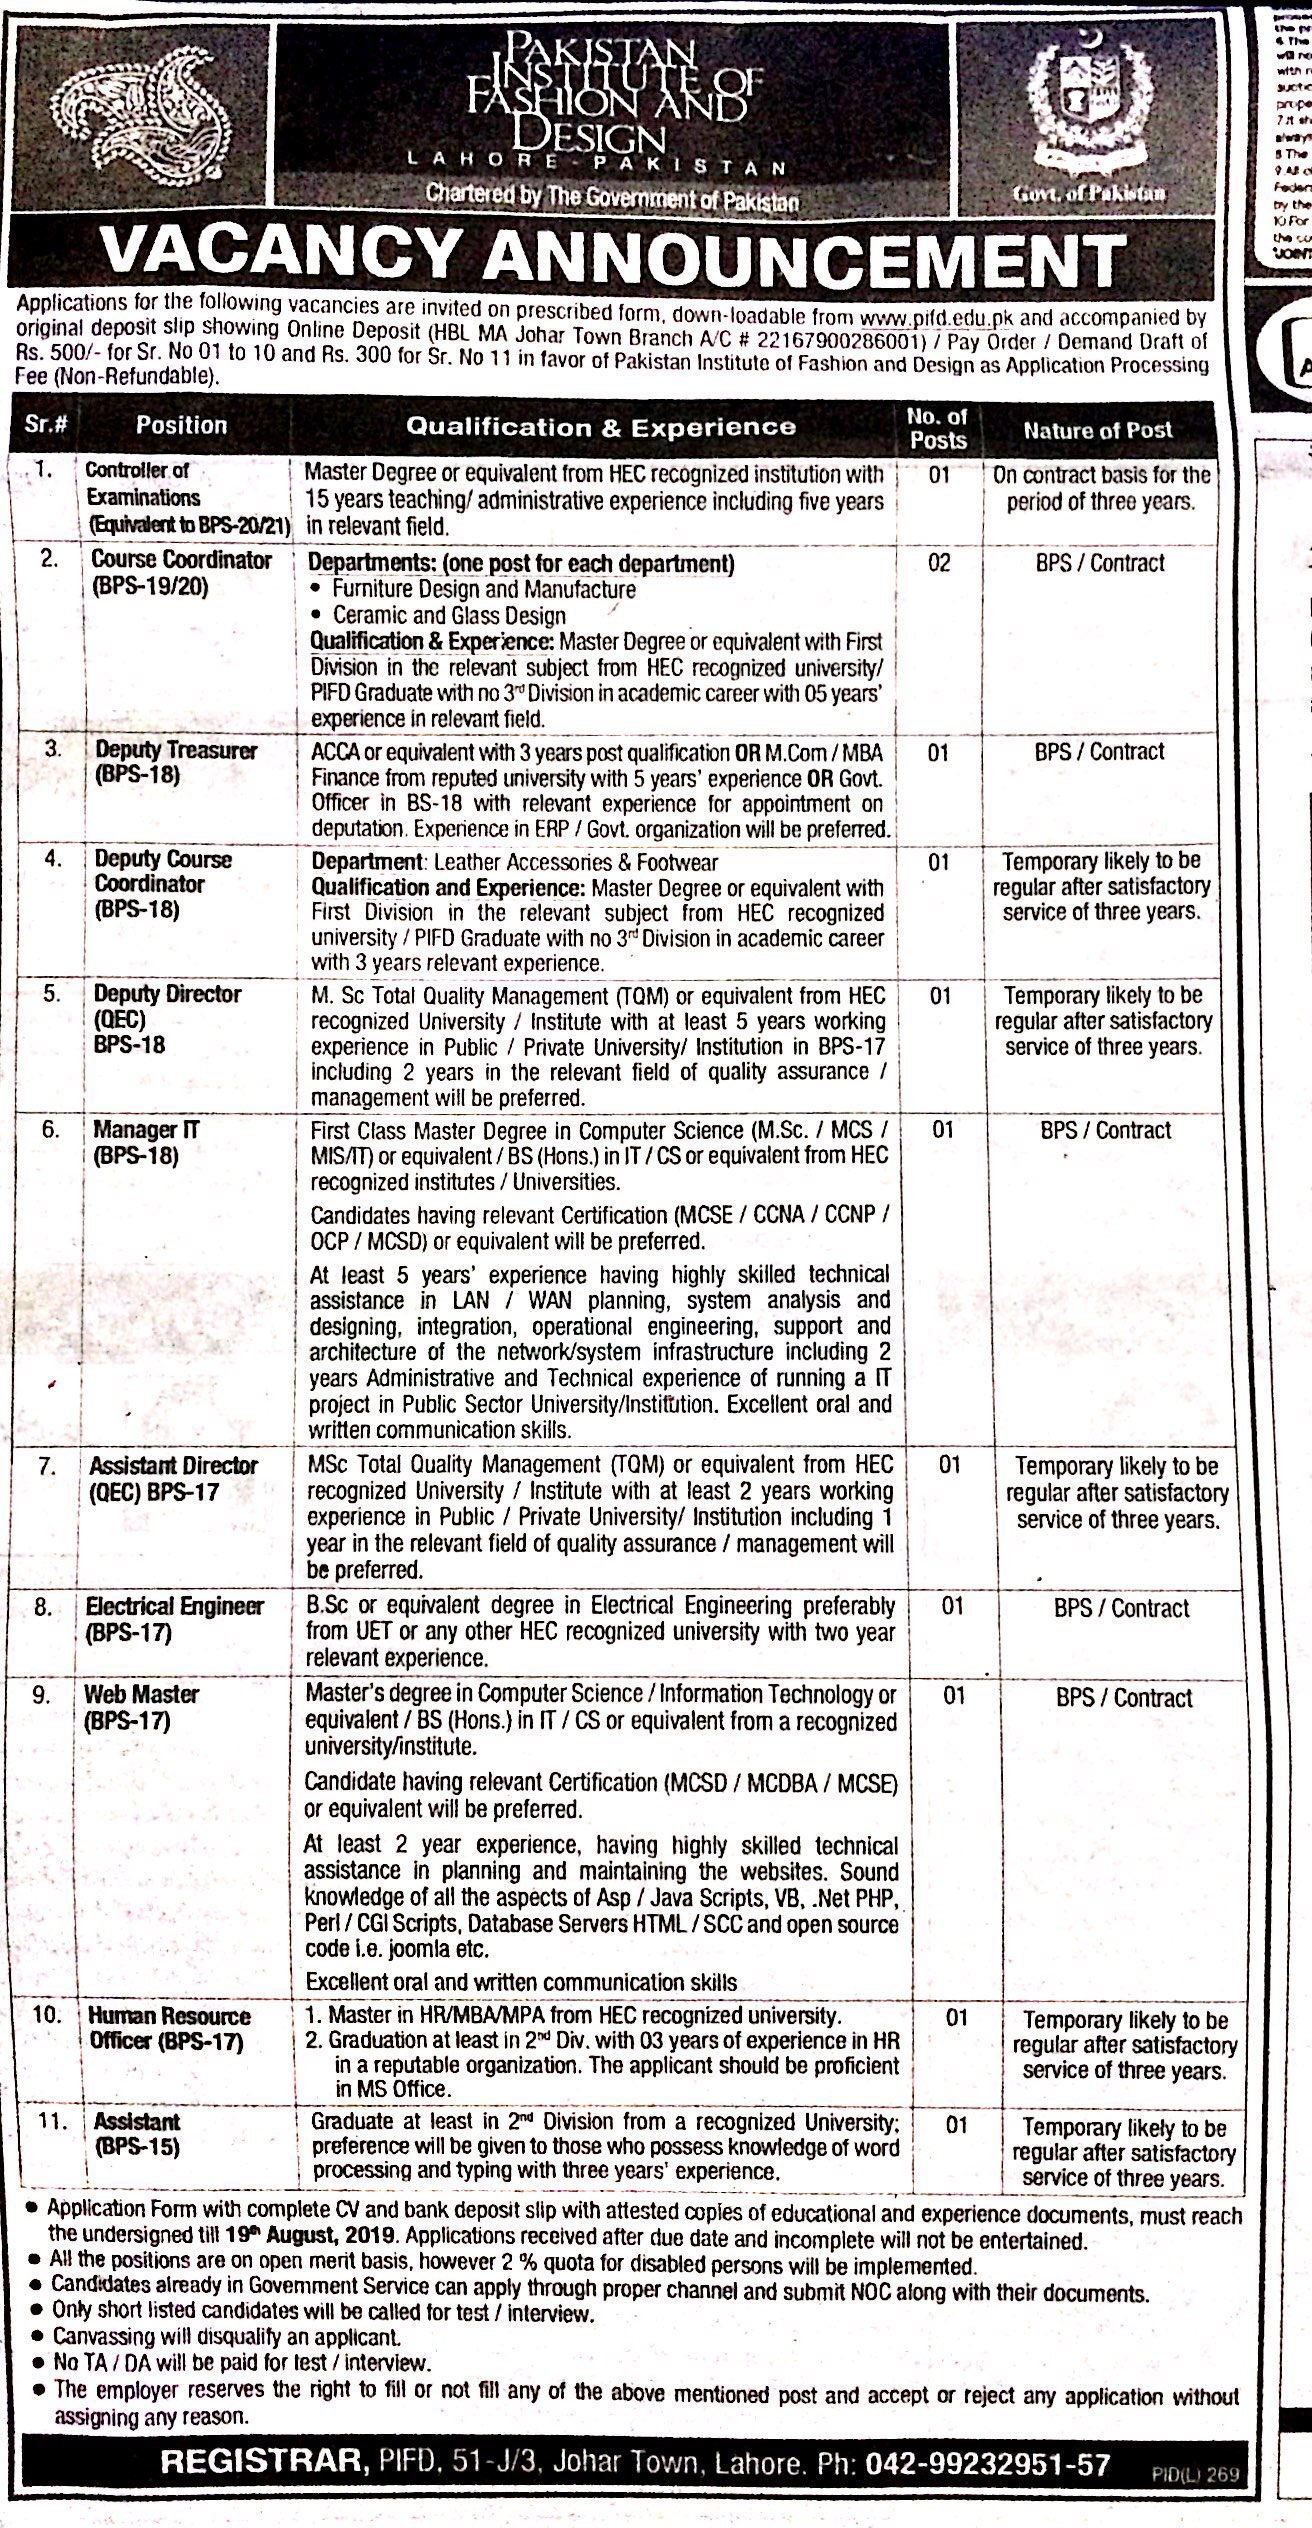 Fashion And Design Jobs Government Of Pakistan Lahore